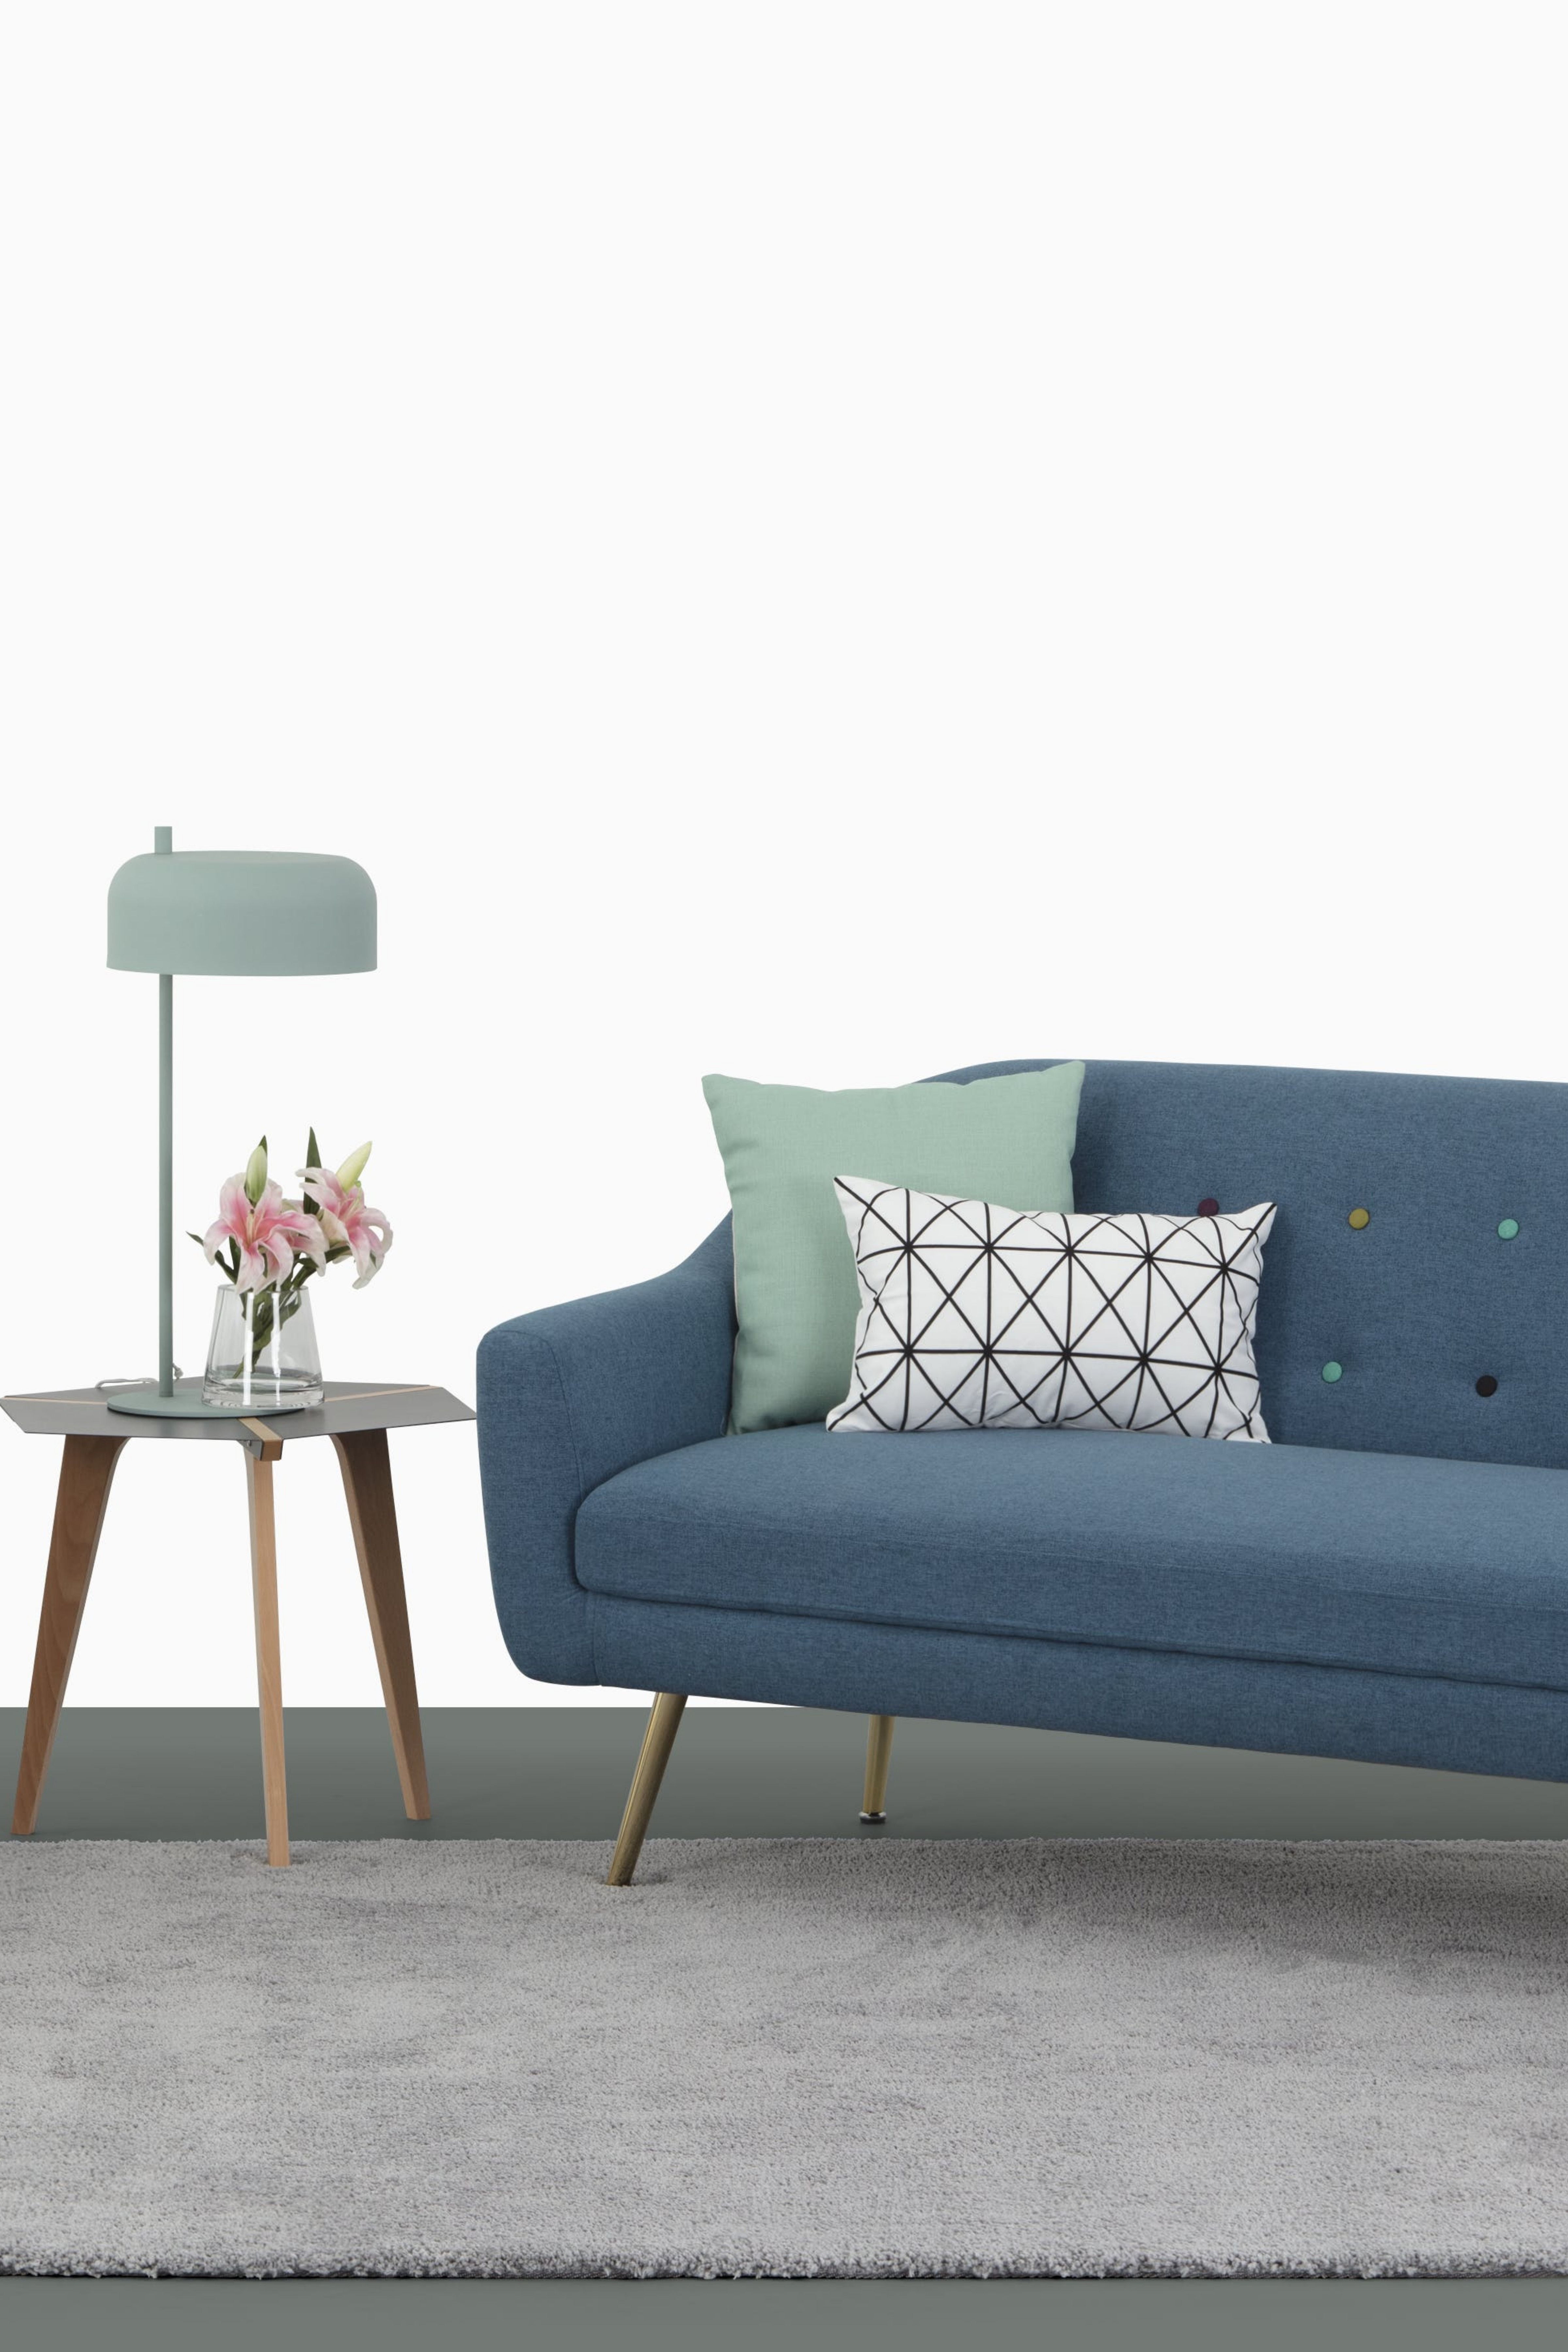 Arden 3 Seater Sofa S Flamboyant Spirit Can Be Reflected Through